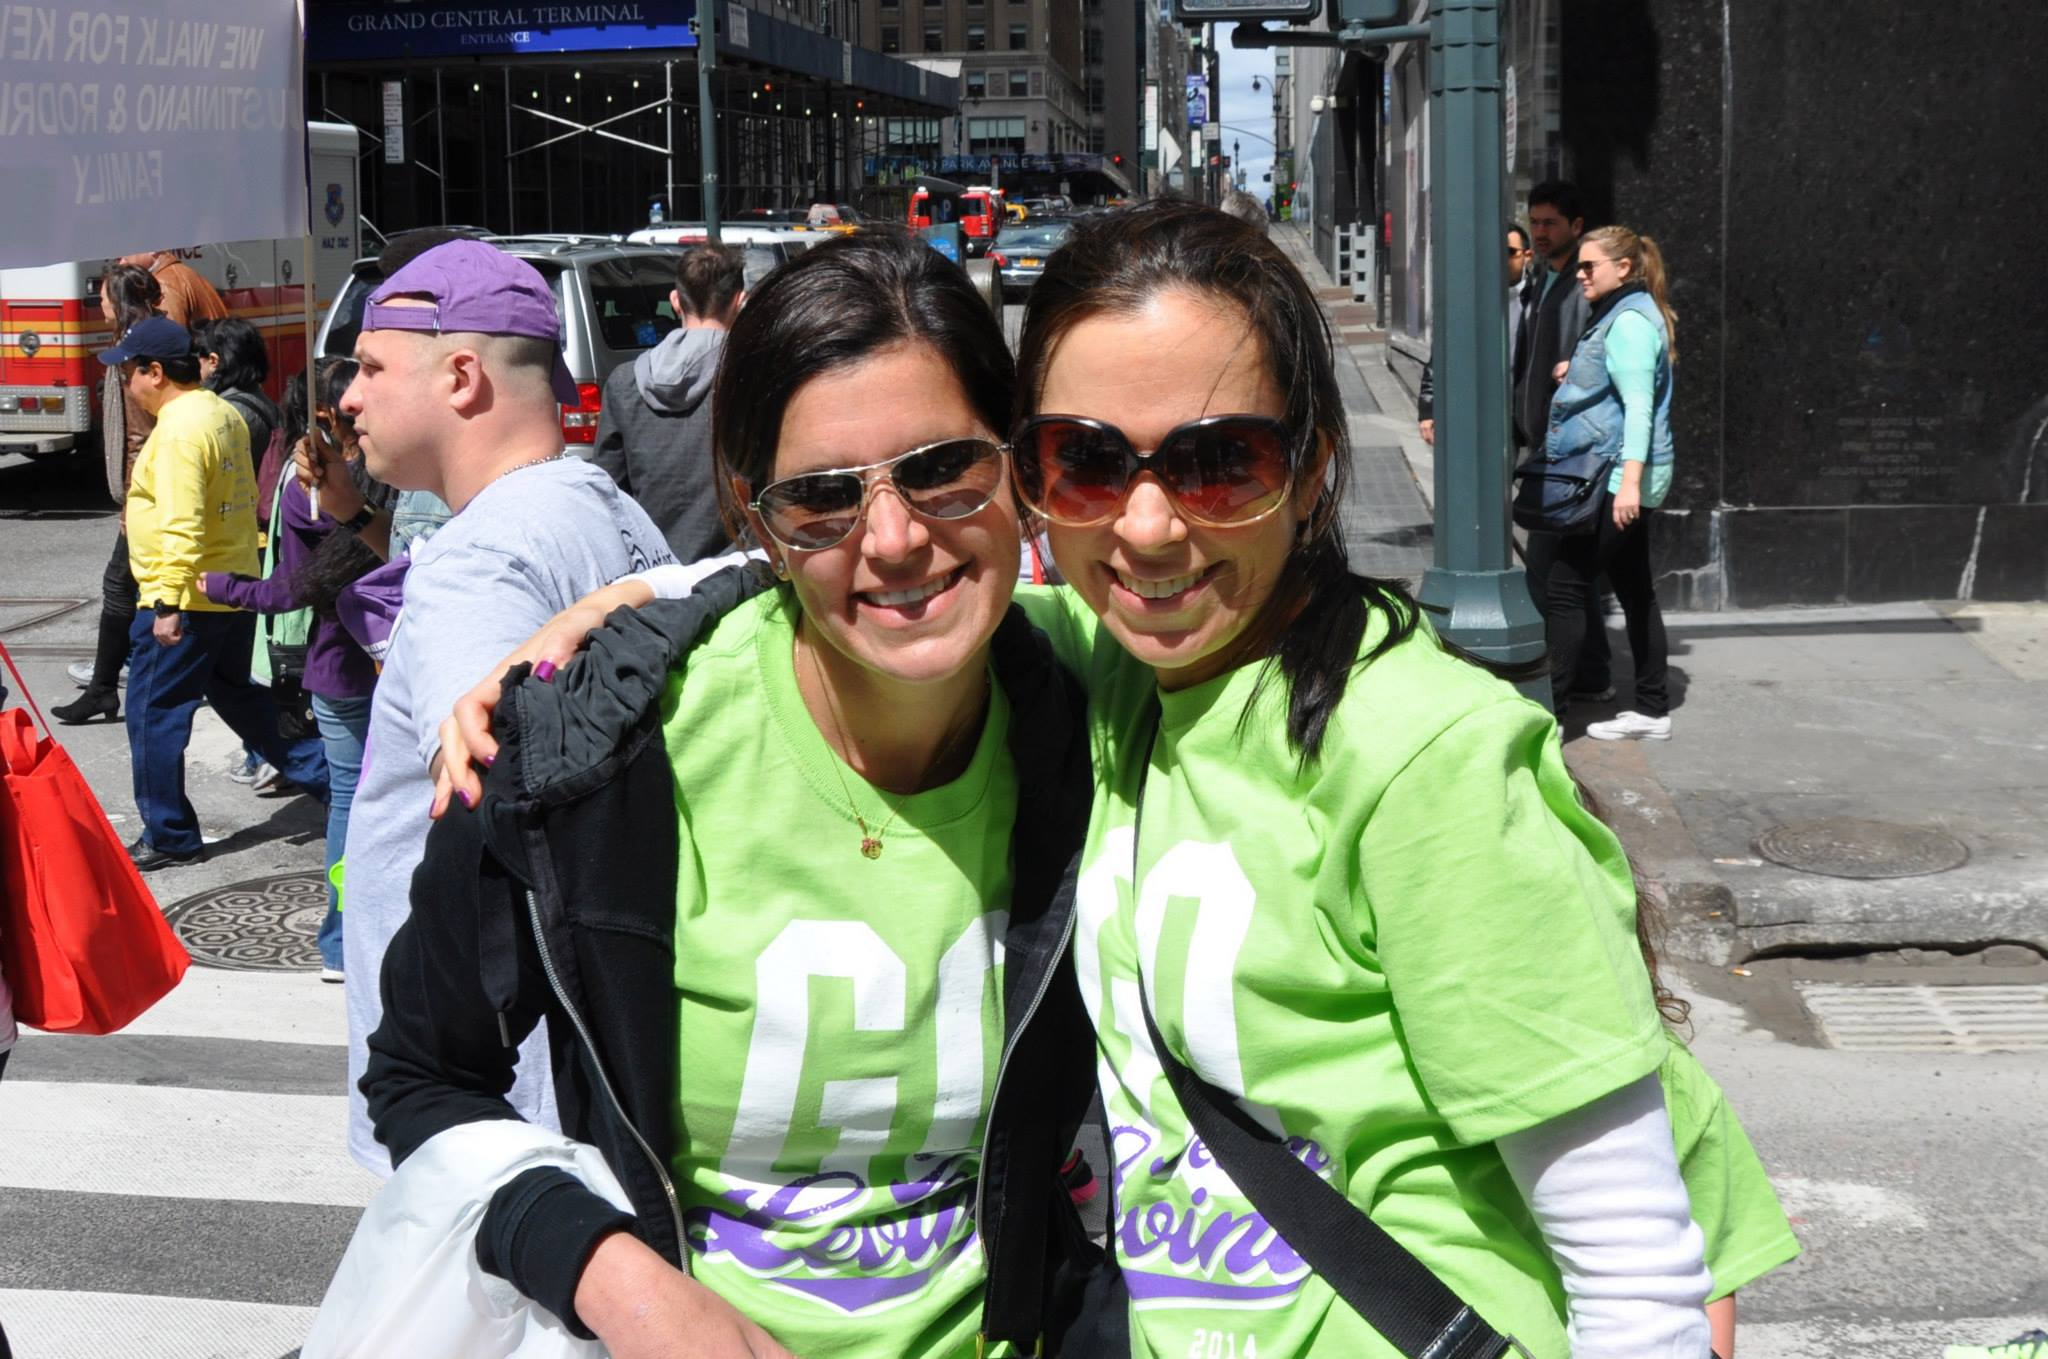 michele-witlieb-and-paulina-levine-at-the-2015-march-for-babies-walk_16729826188_o.jpg